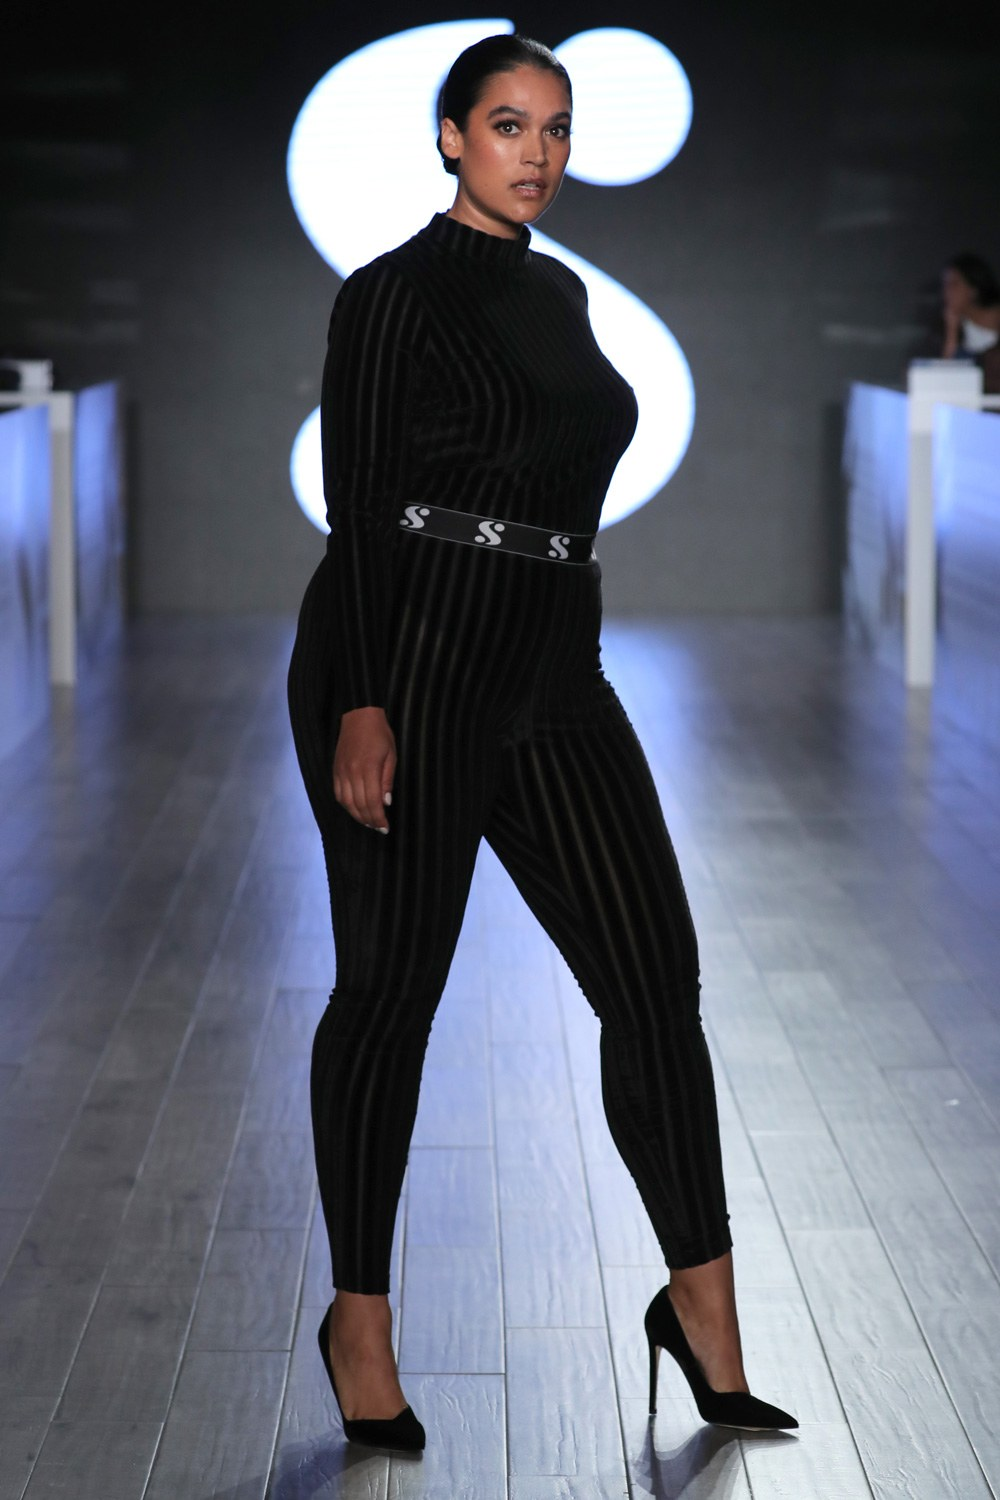 woman wearing a black catsuit on the runway